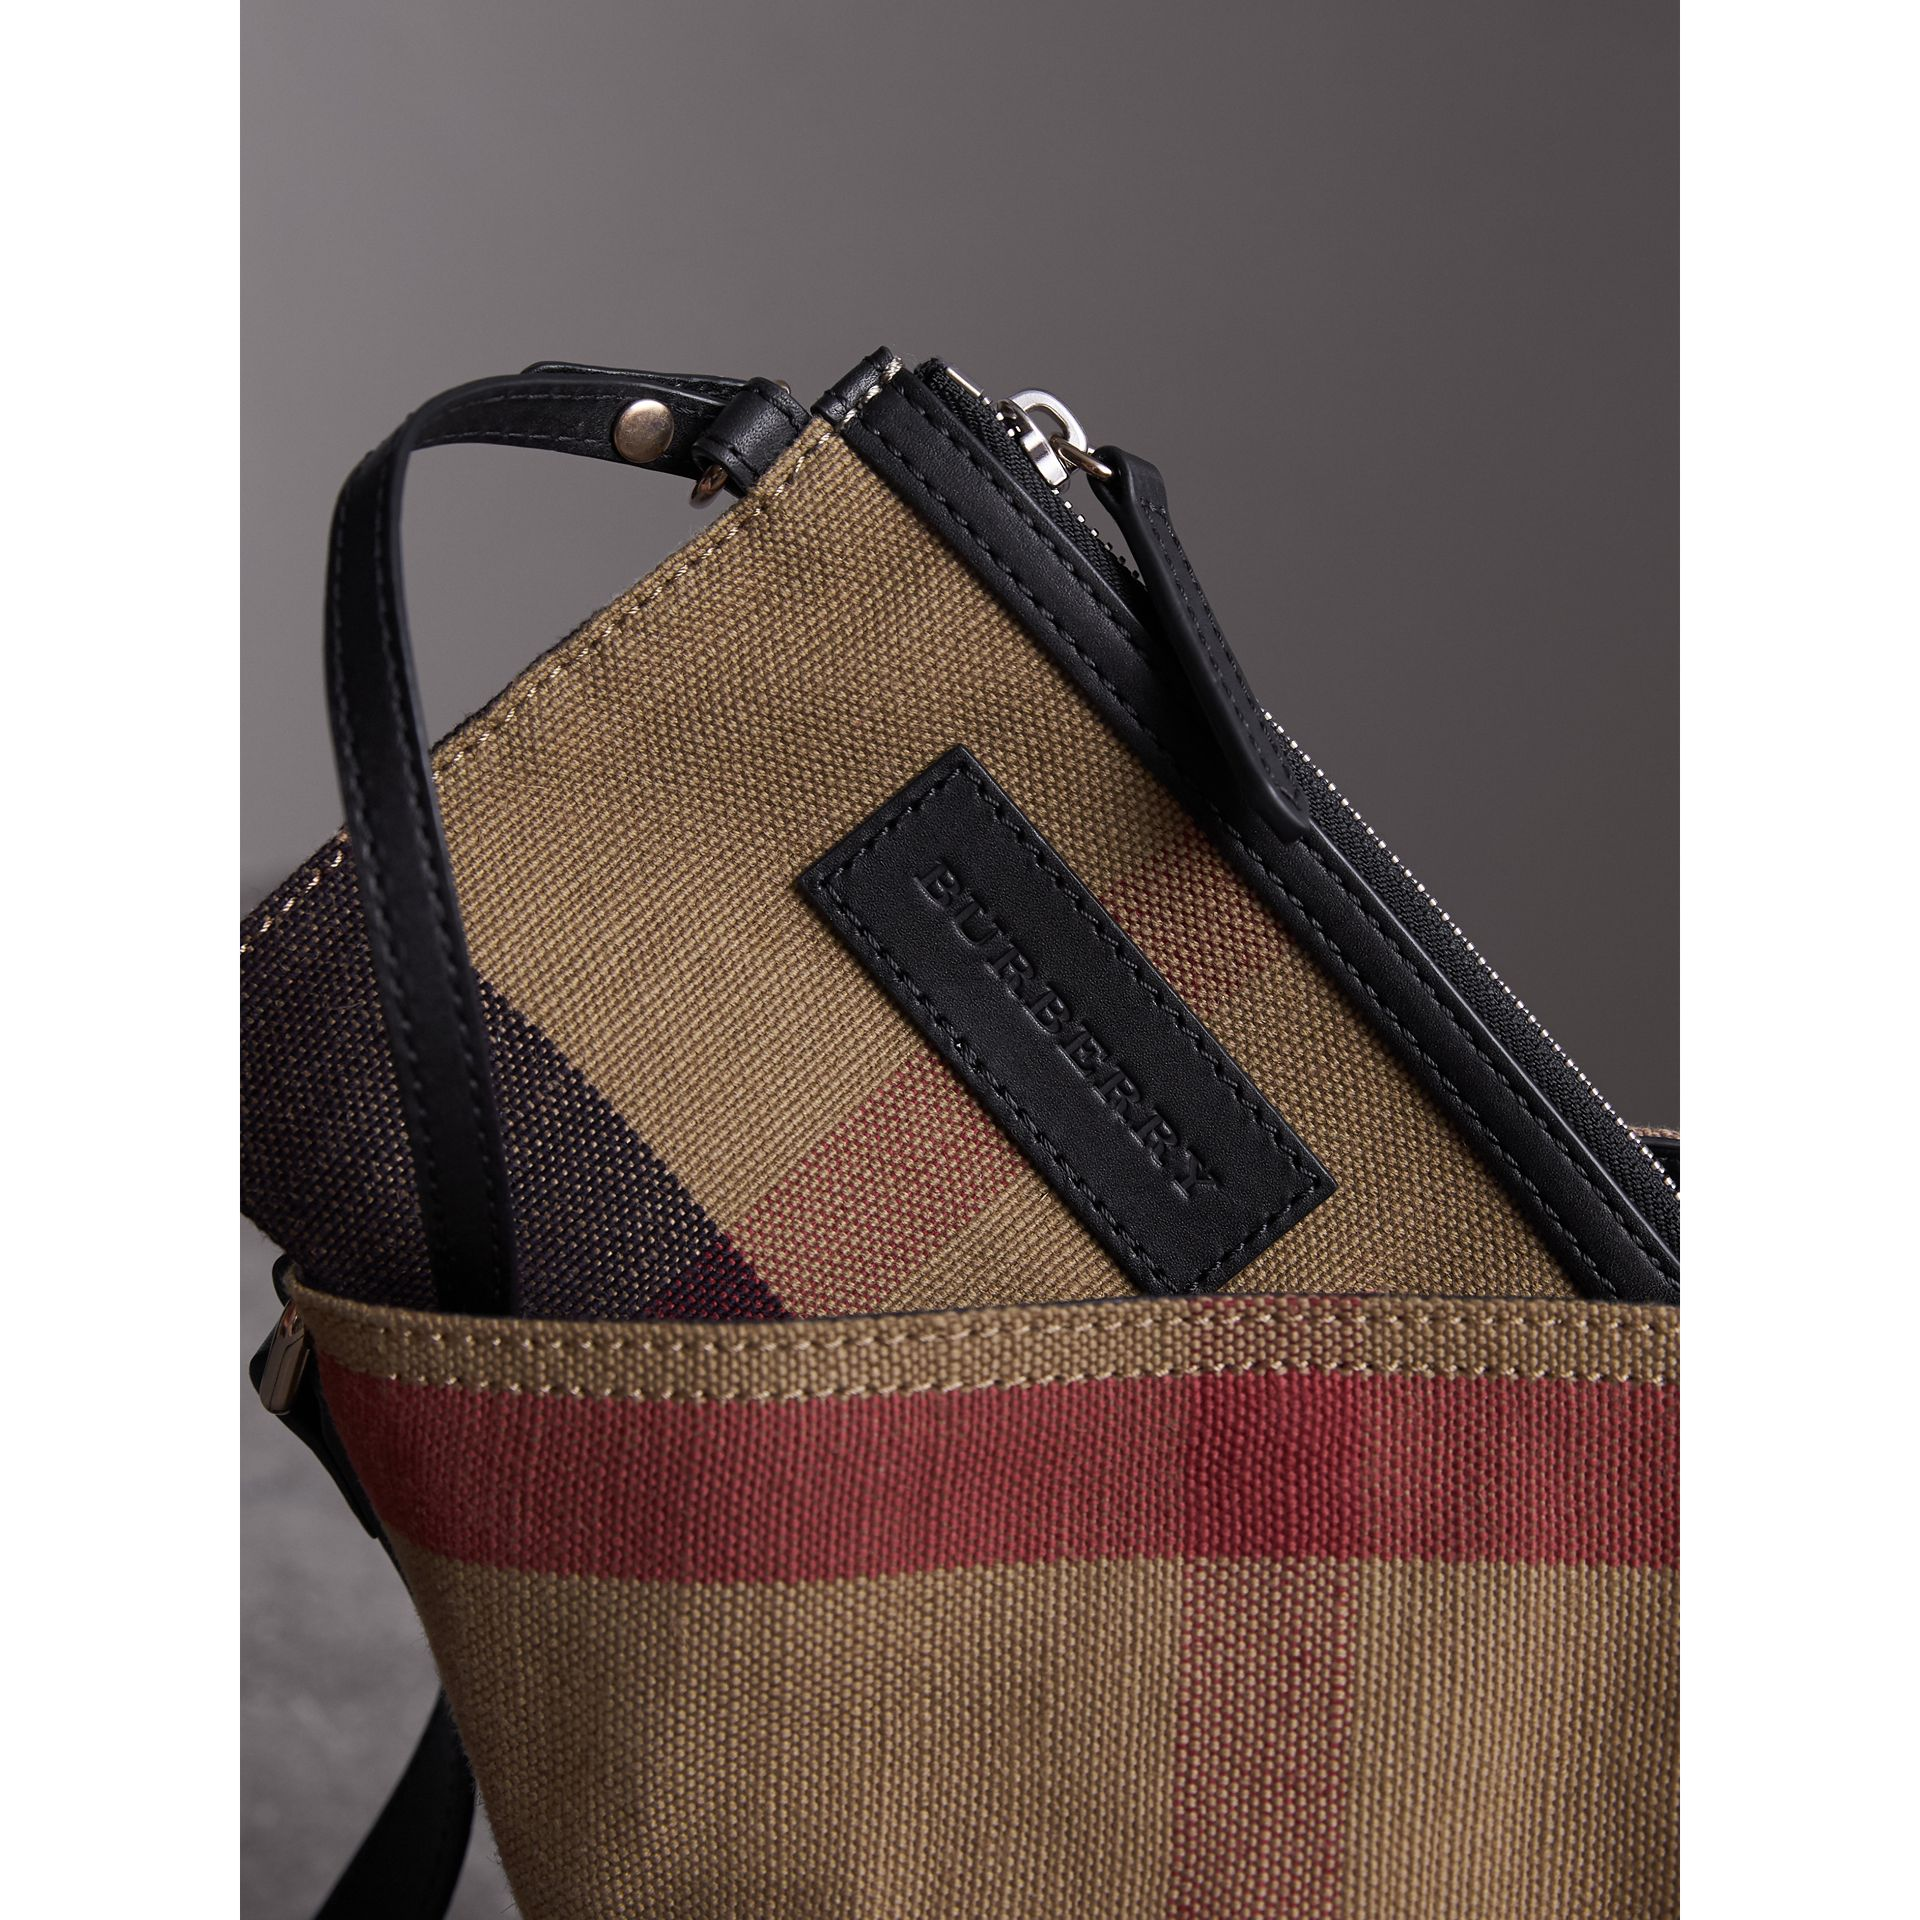 Petit sac The Ashby à motif Canvas check avec cuir (Noir) - Femme | Burberry - photo de la galerie 5